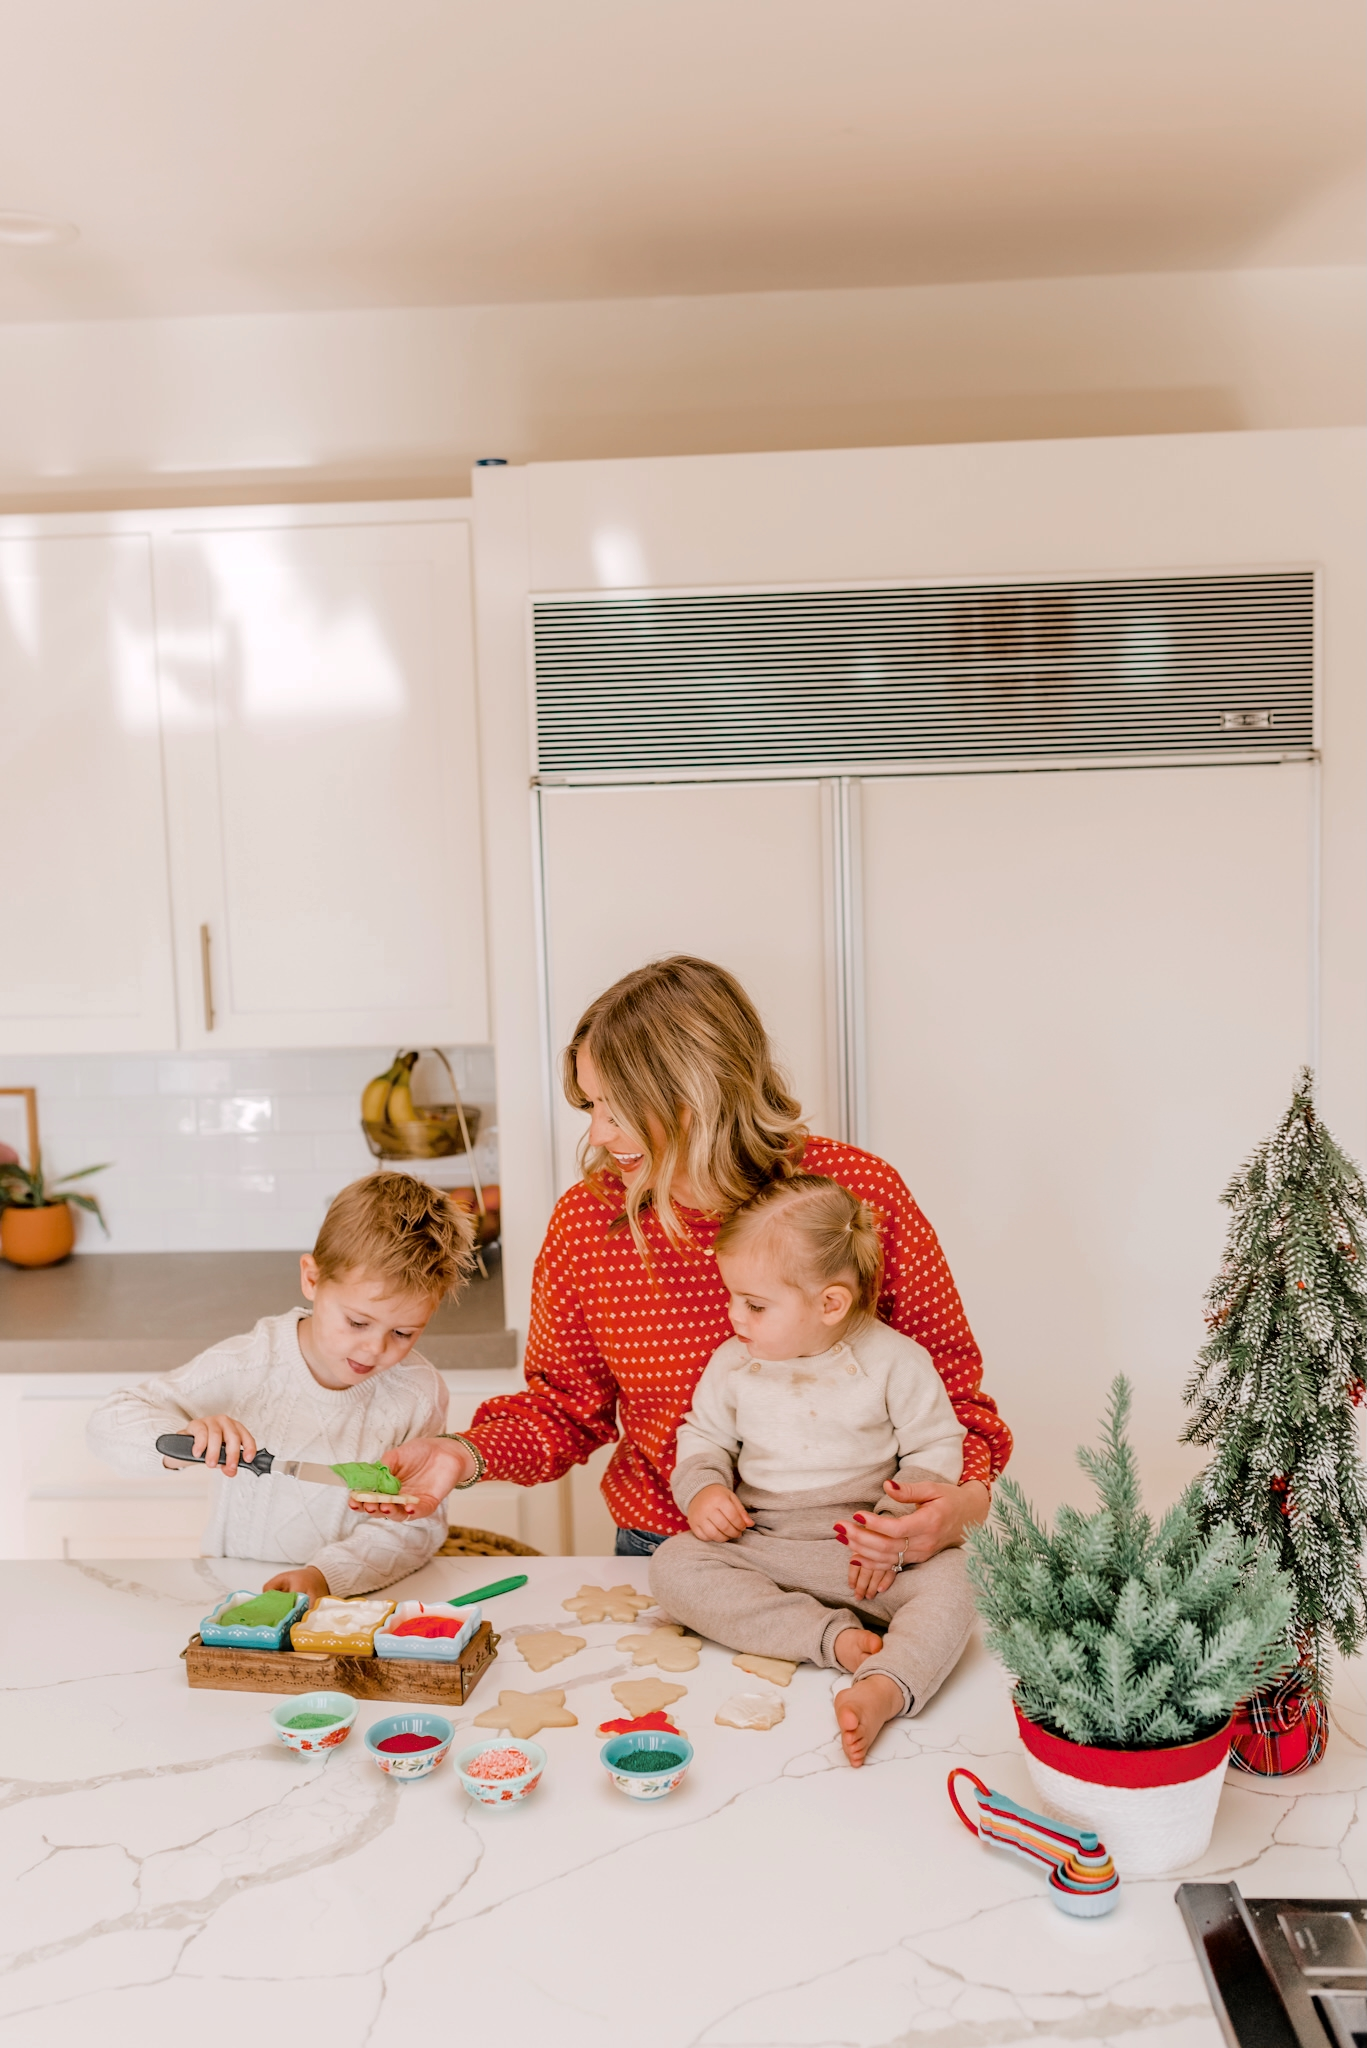 Holiday Traditions with Walmart by popular San Diego lifestyle blog, Navy Grace: image of a mom and her two small children decorating Christmas sugar cookies in their kitchen.